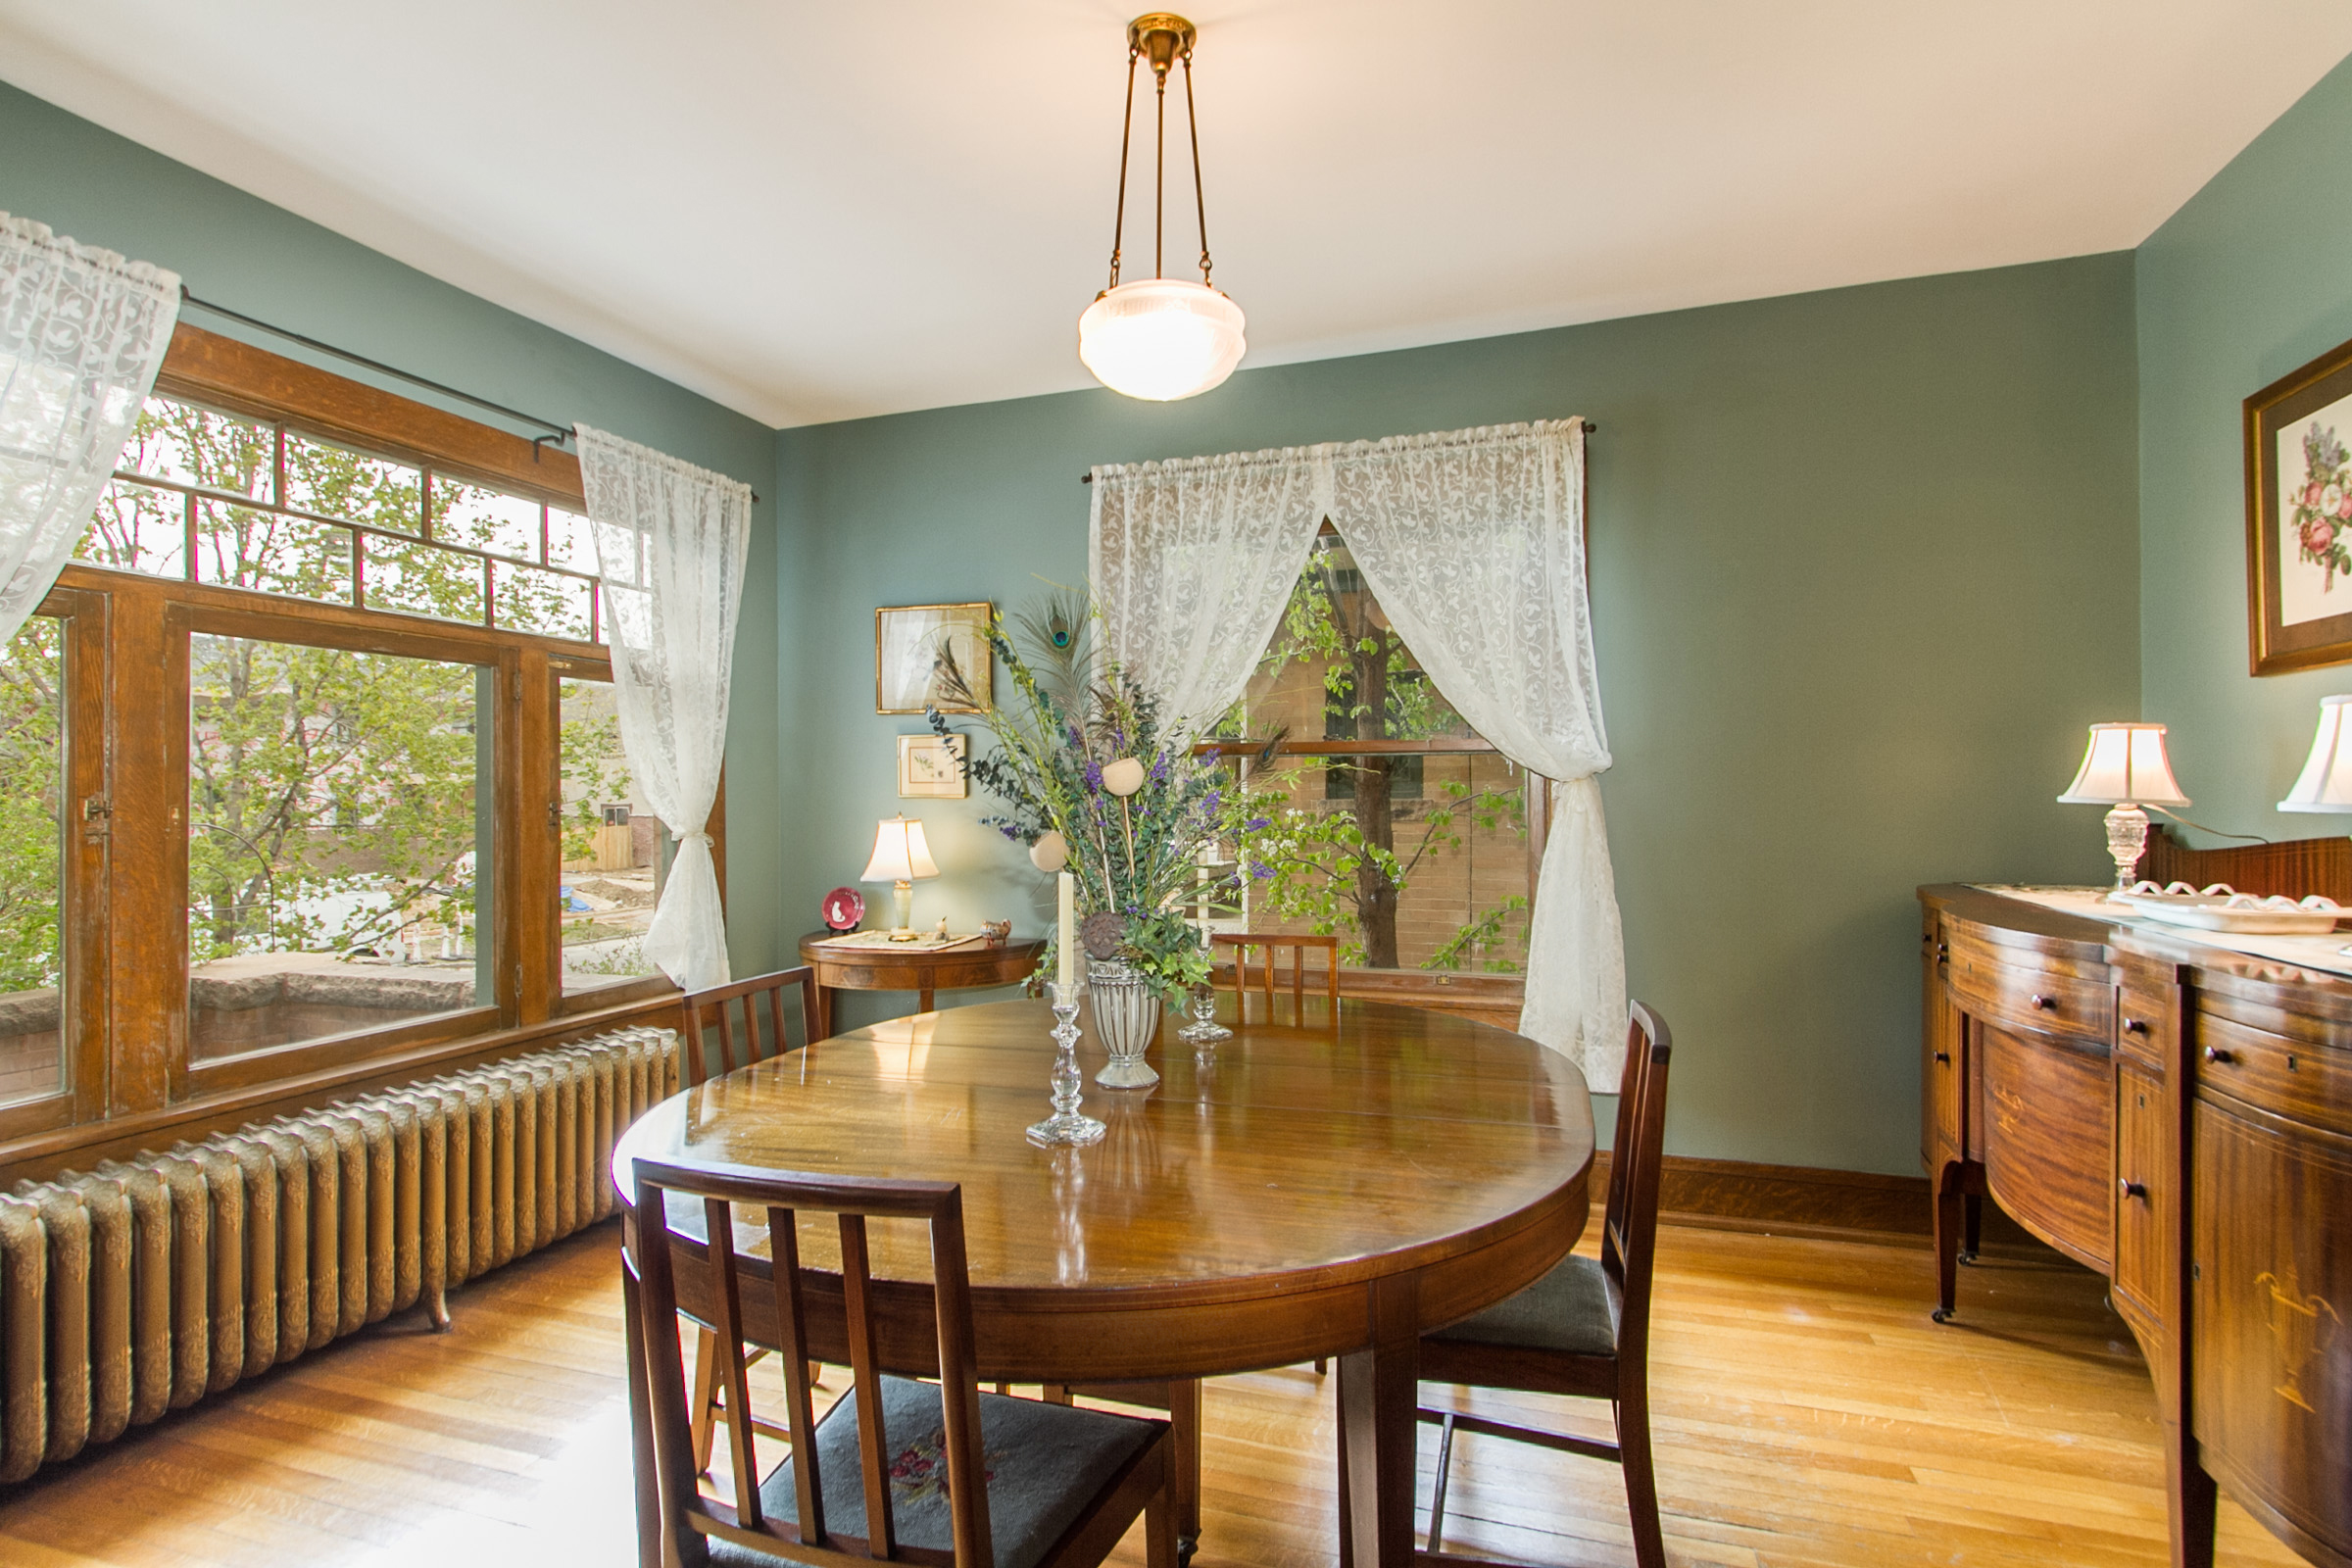 1246108_Large-Dining-Room-Has-Great-WIndows_high.jpg